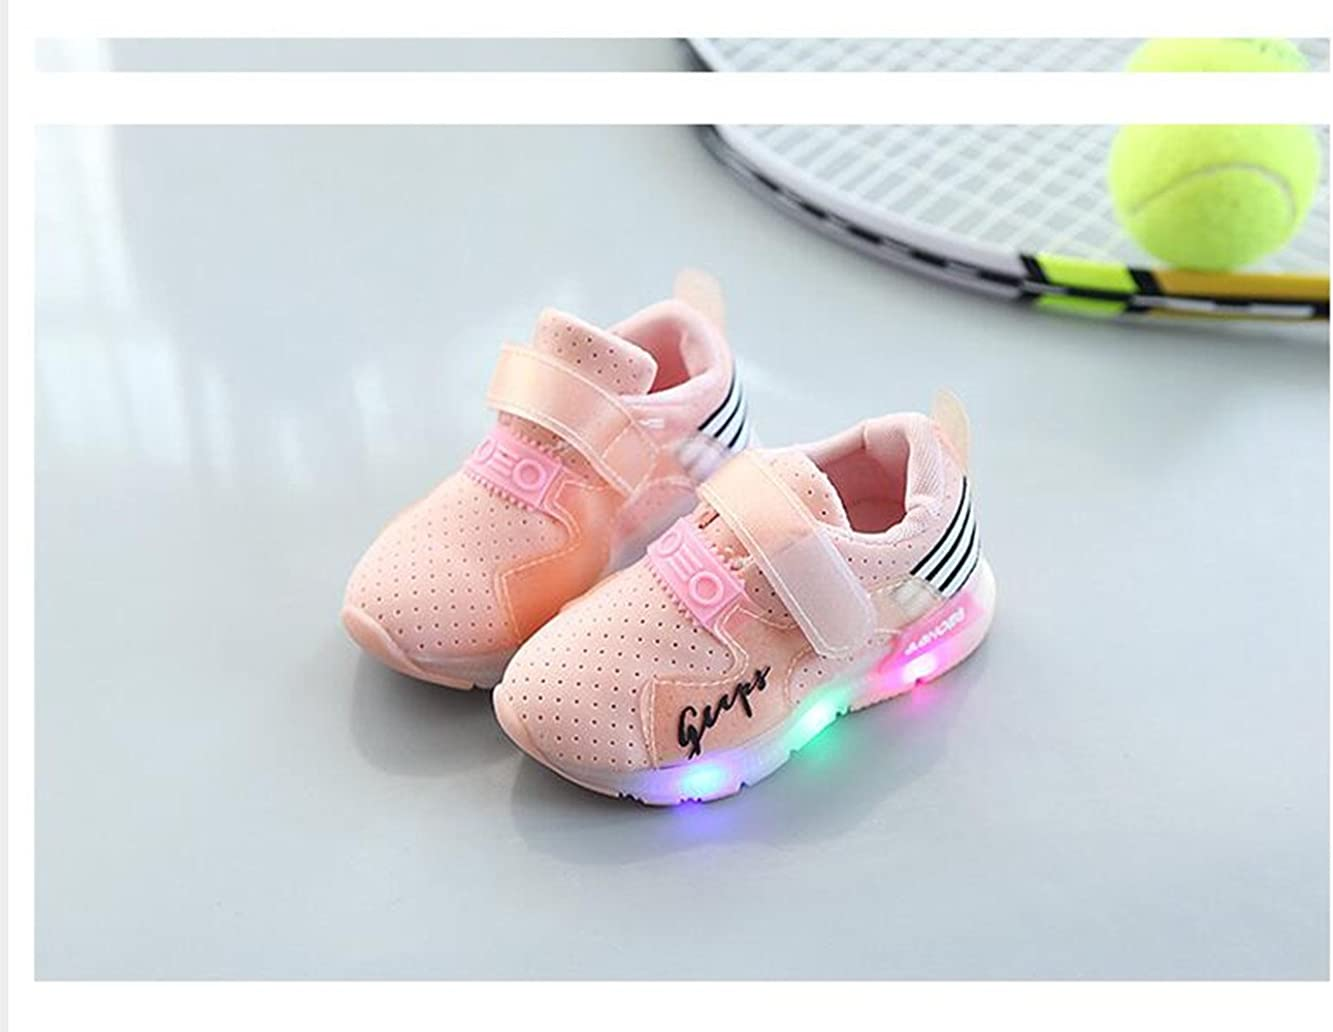 xiaoyang Childrens Shine Sports Shoes Boys Girls Non-Slip Fashion Sneakers Baby Toddler LED Shoes for Kids